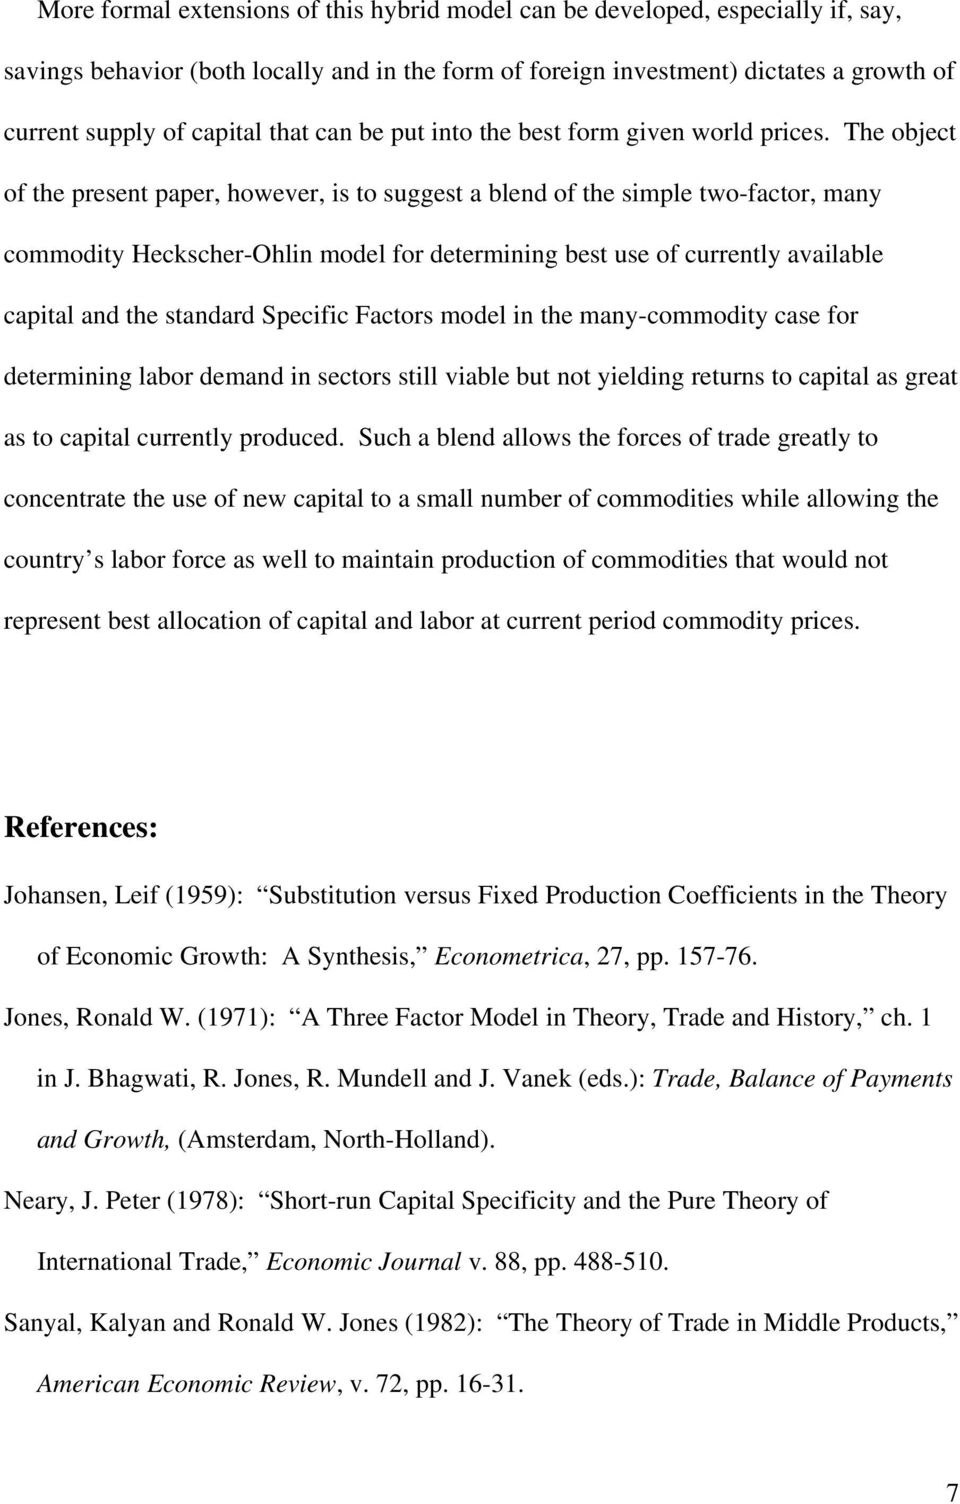 The object of the present paper, however, is to suggest a blend of the simple two-factor, many commodity Heckscher-Ohlin model for determining best use of currently available capital and the standard